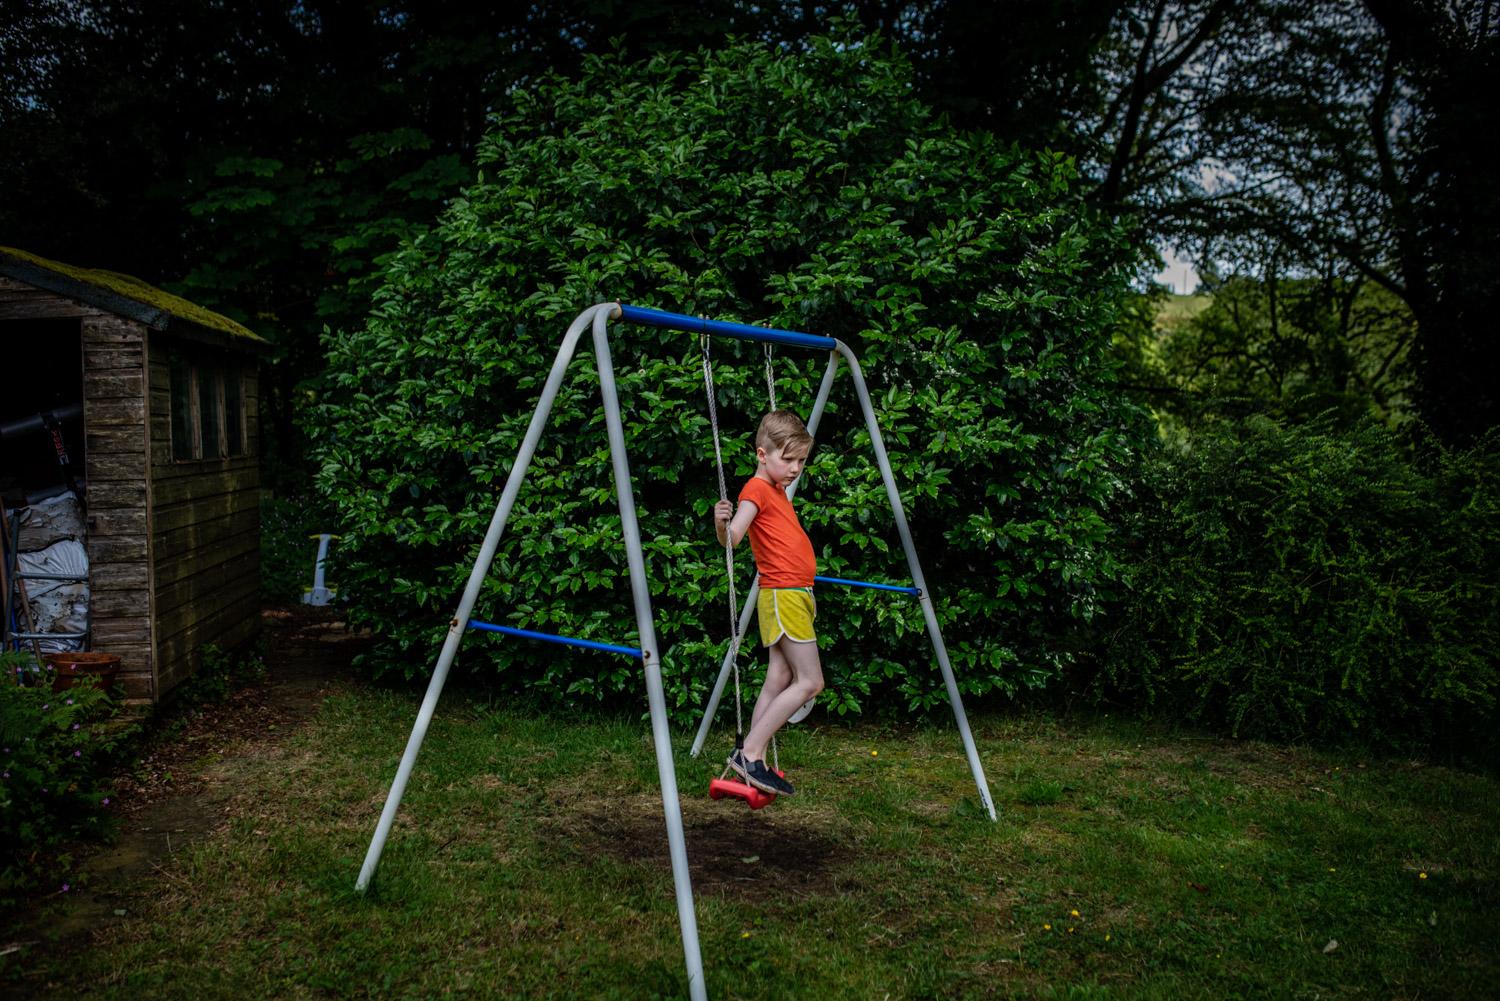 A portrait of a young boy standing on a swing in his garden, staring into the distance during this relaxed family portrait photo shoot in Manchester, UK.